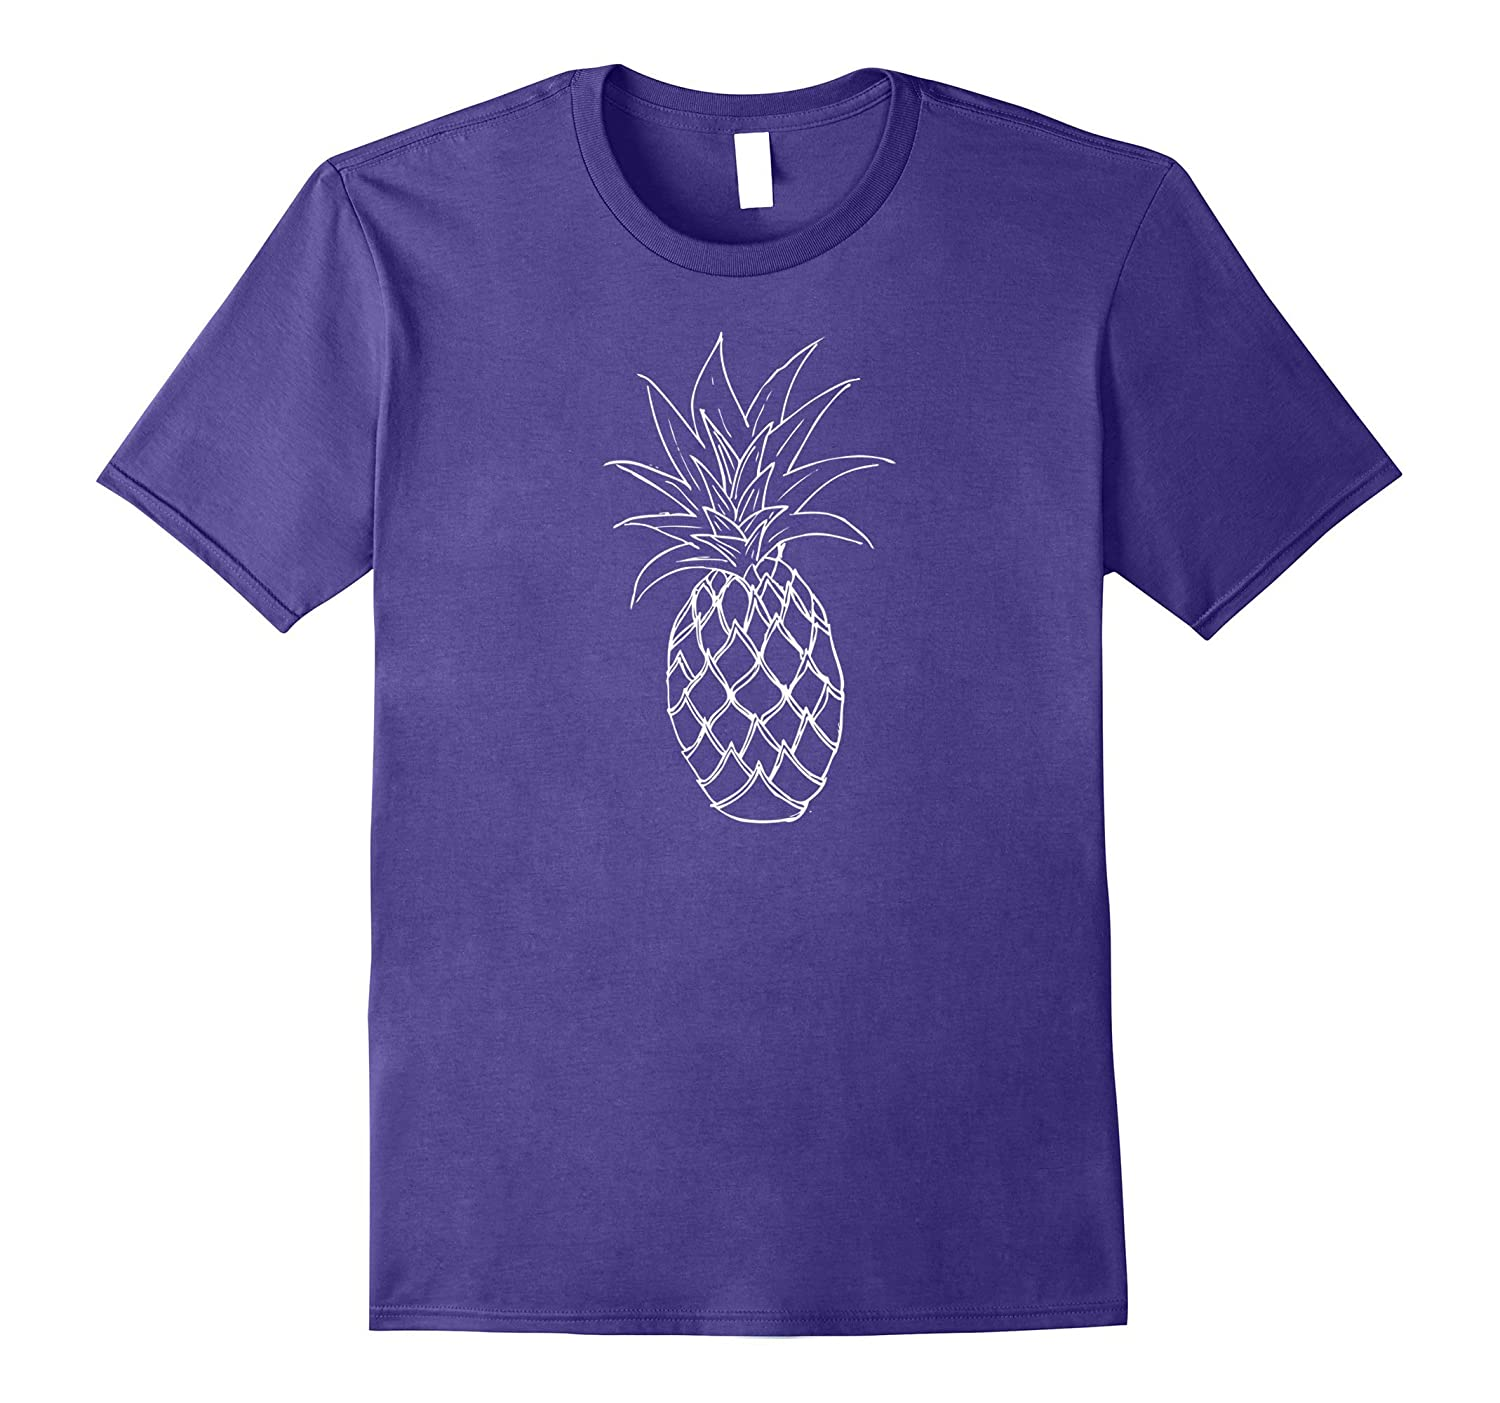 Pineapple Shirt Cute Fruit Gift for Boho Hipster or Foodie-Vaci